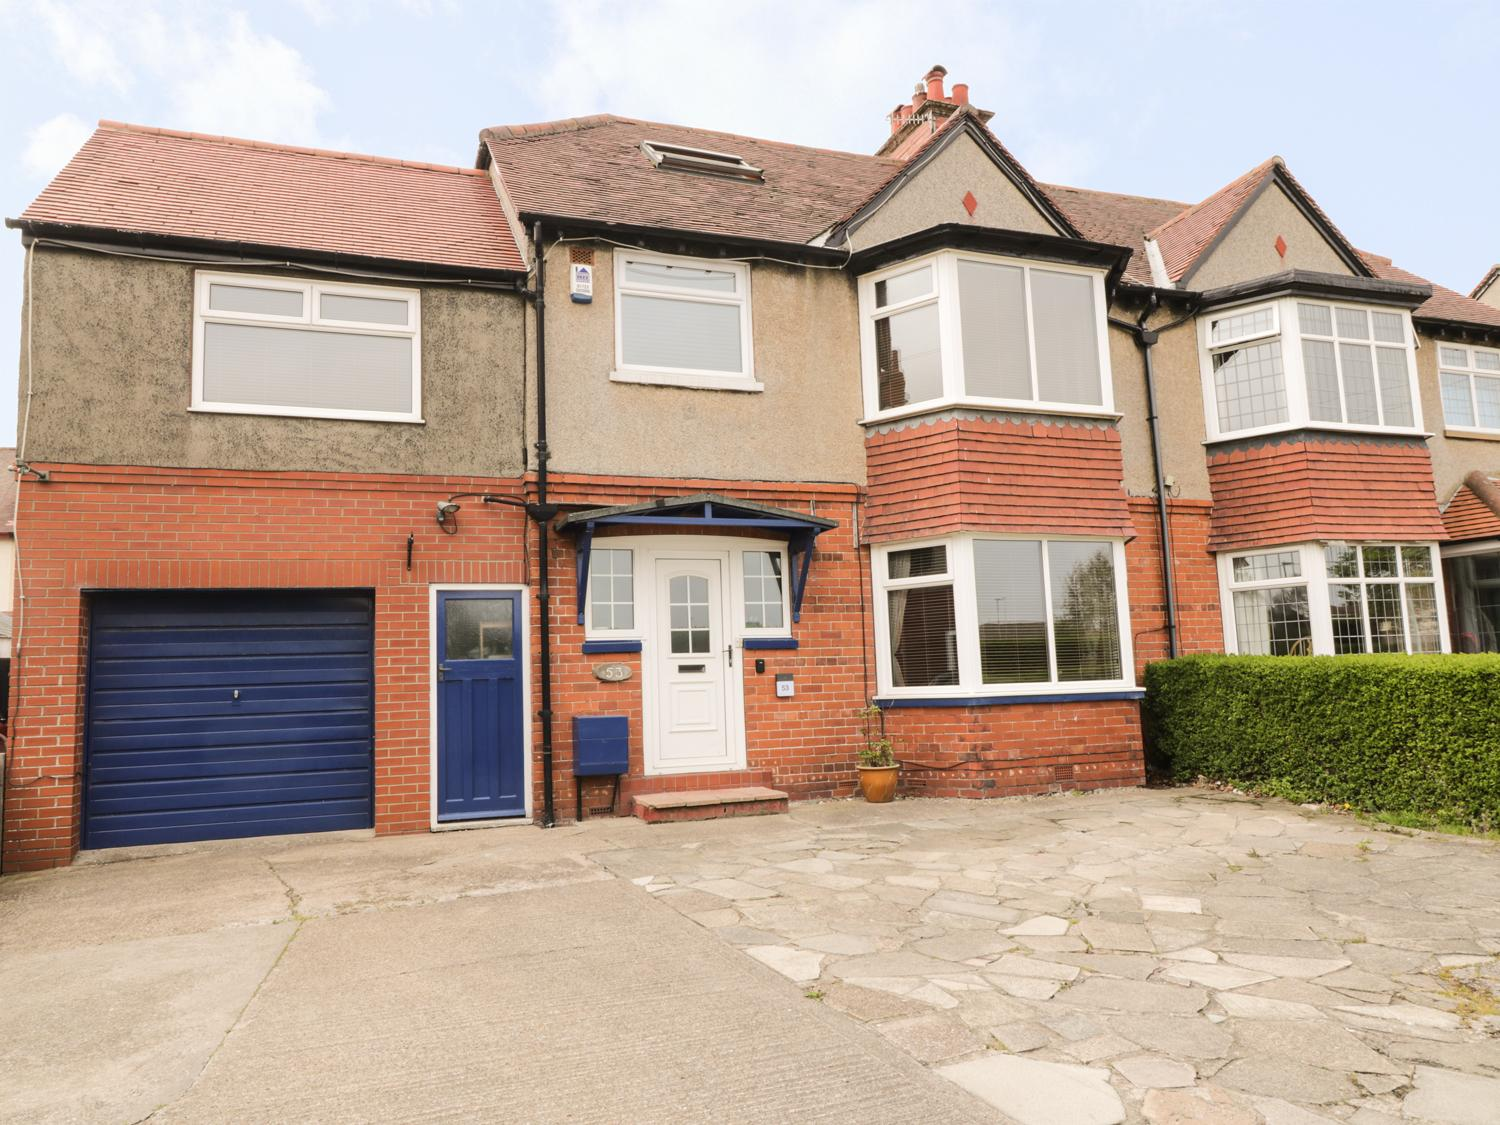 Holiday Cottage Reviews for 53 Burniston Road - Holiday Cottage in Scarborough, North Yorkshire